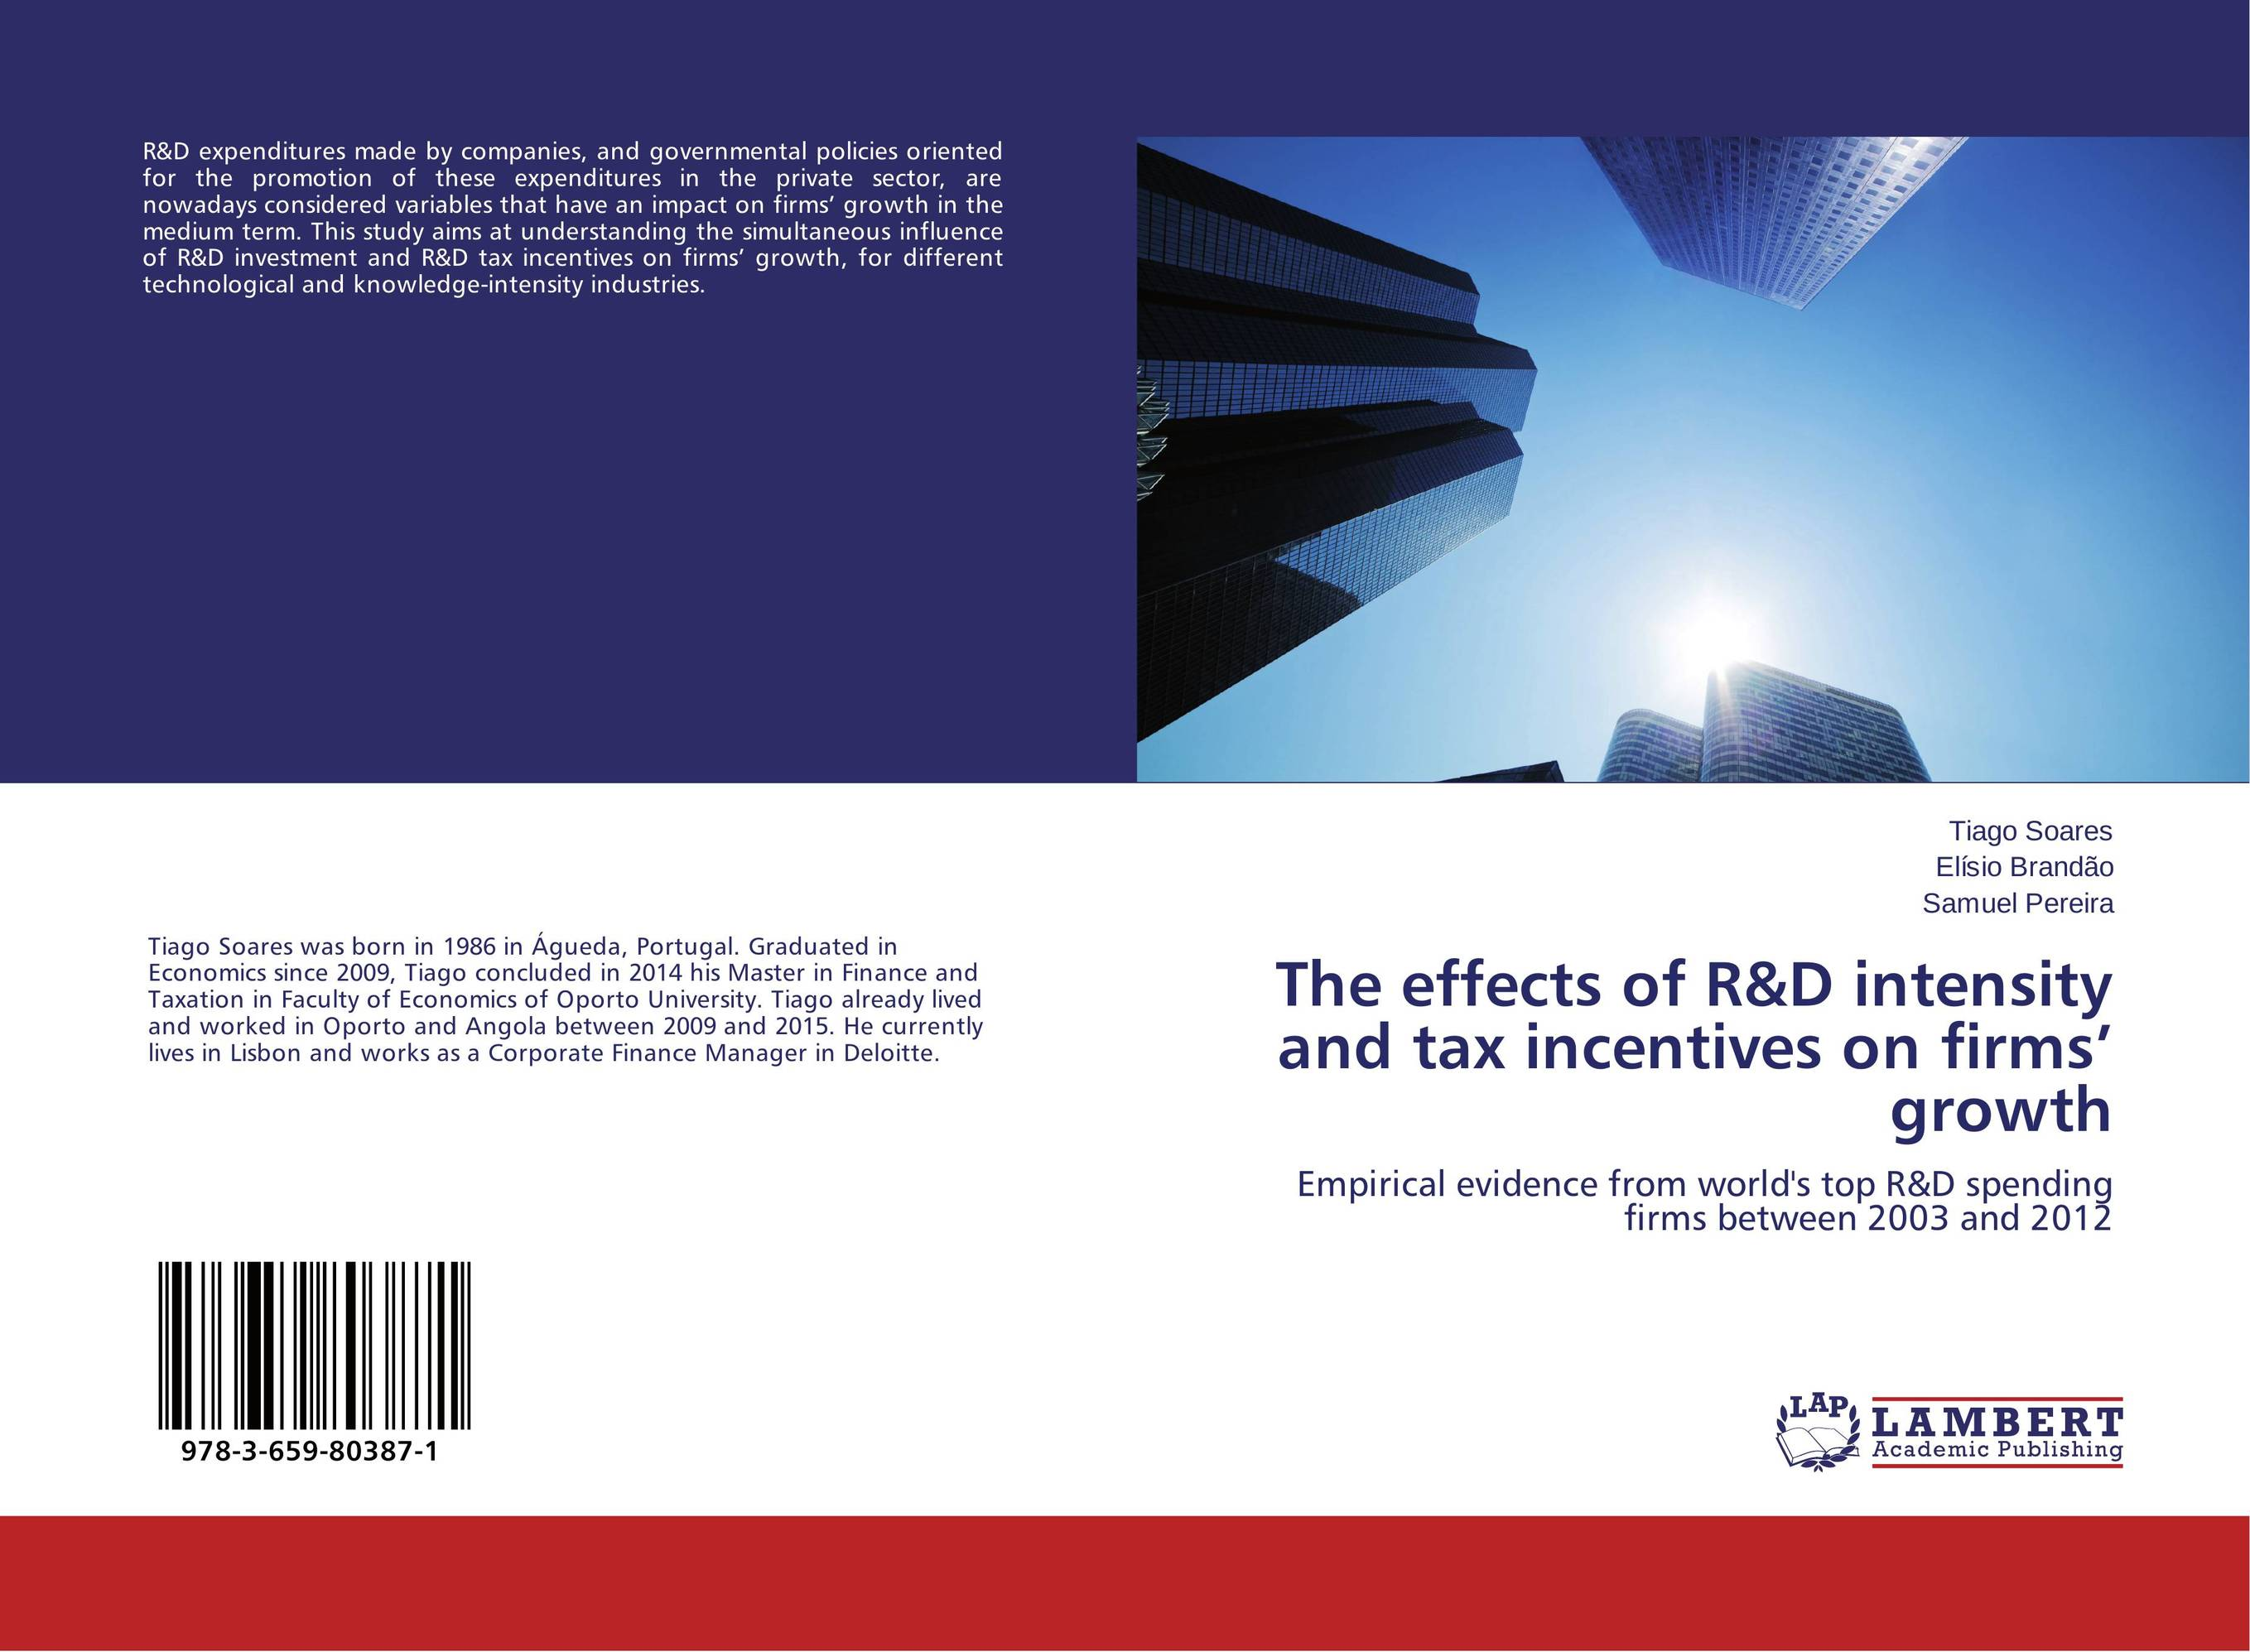 The effects of R&D intensity and tax incentives on firms' growth impact 185 r